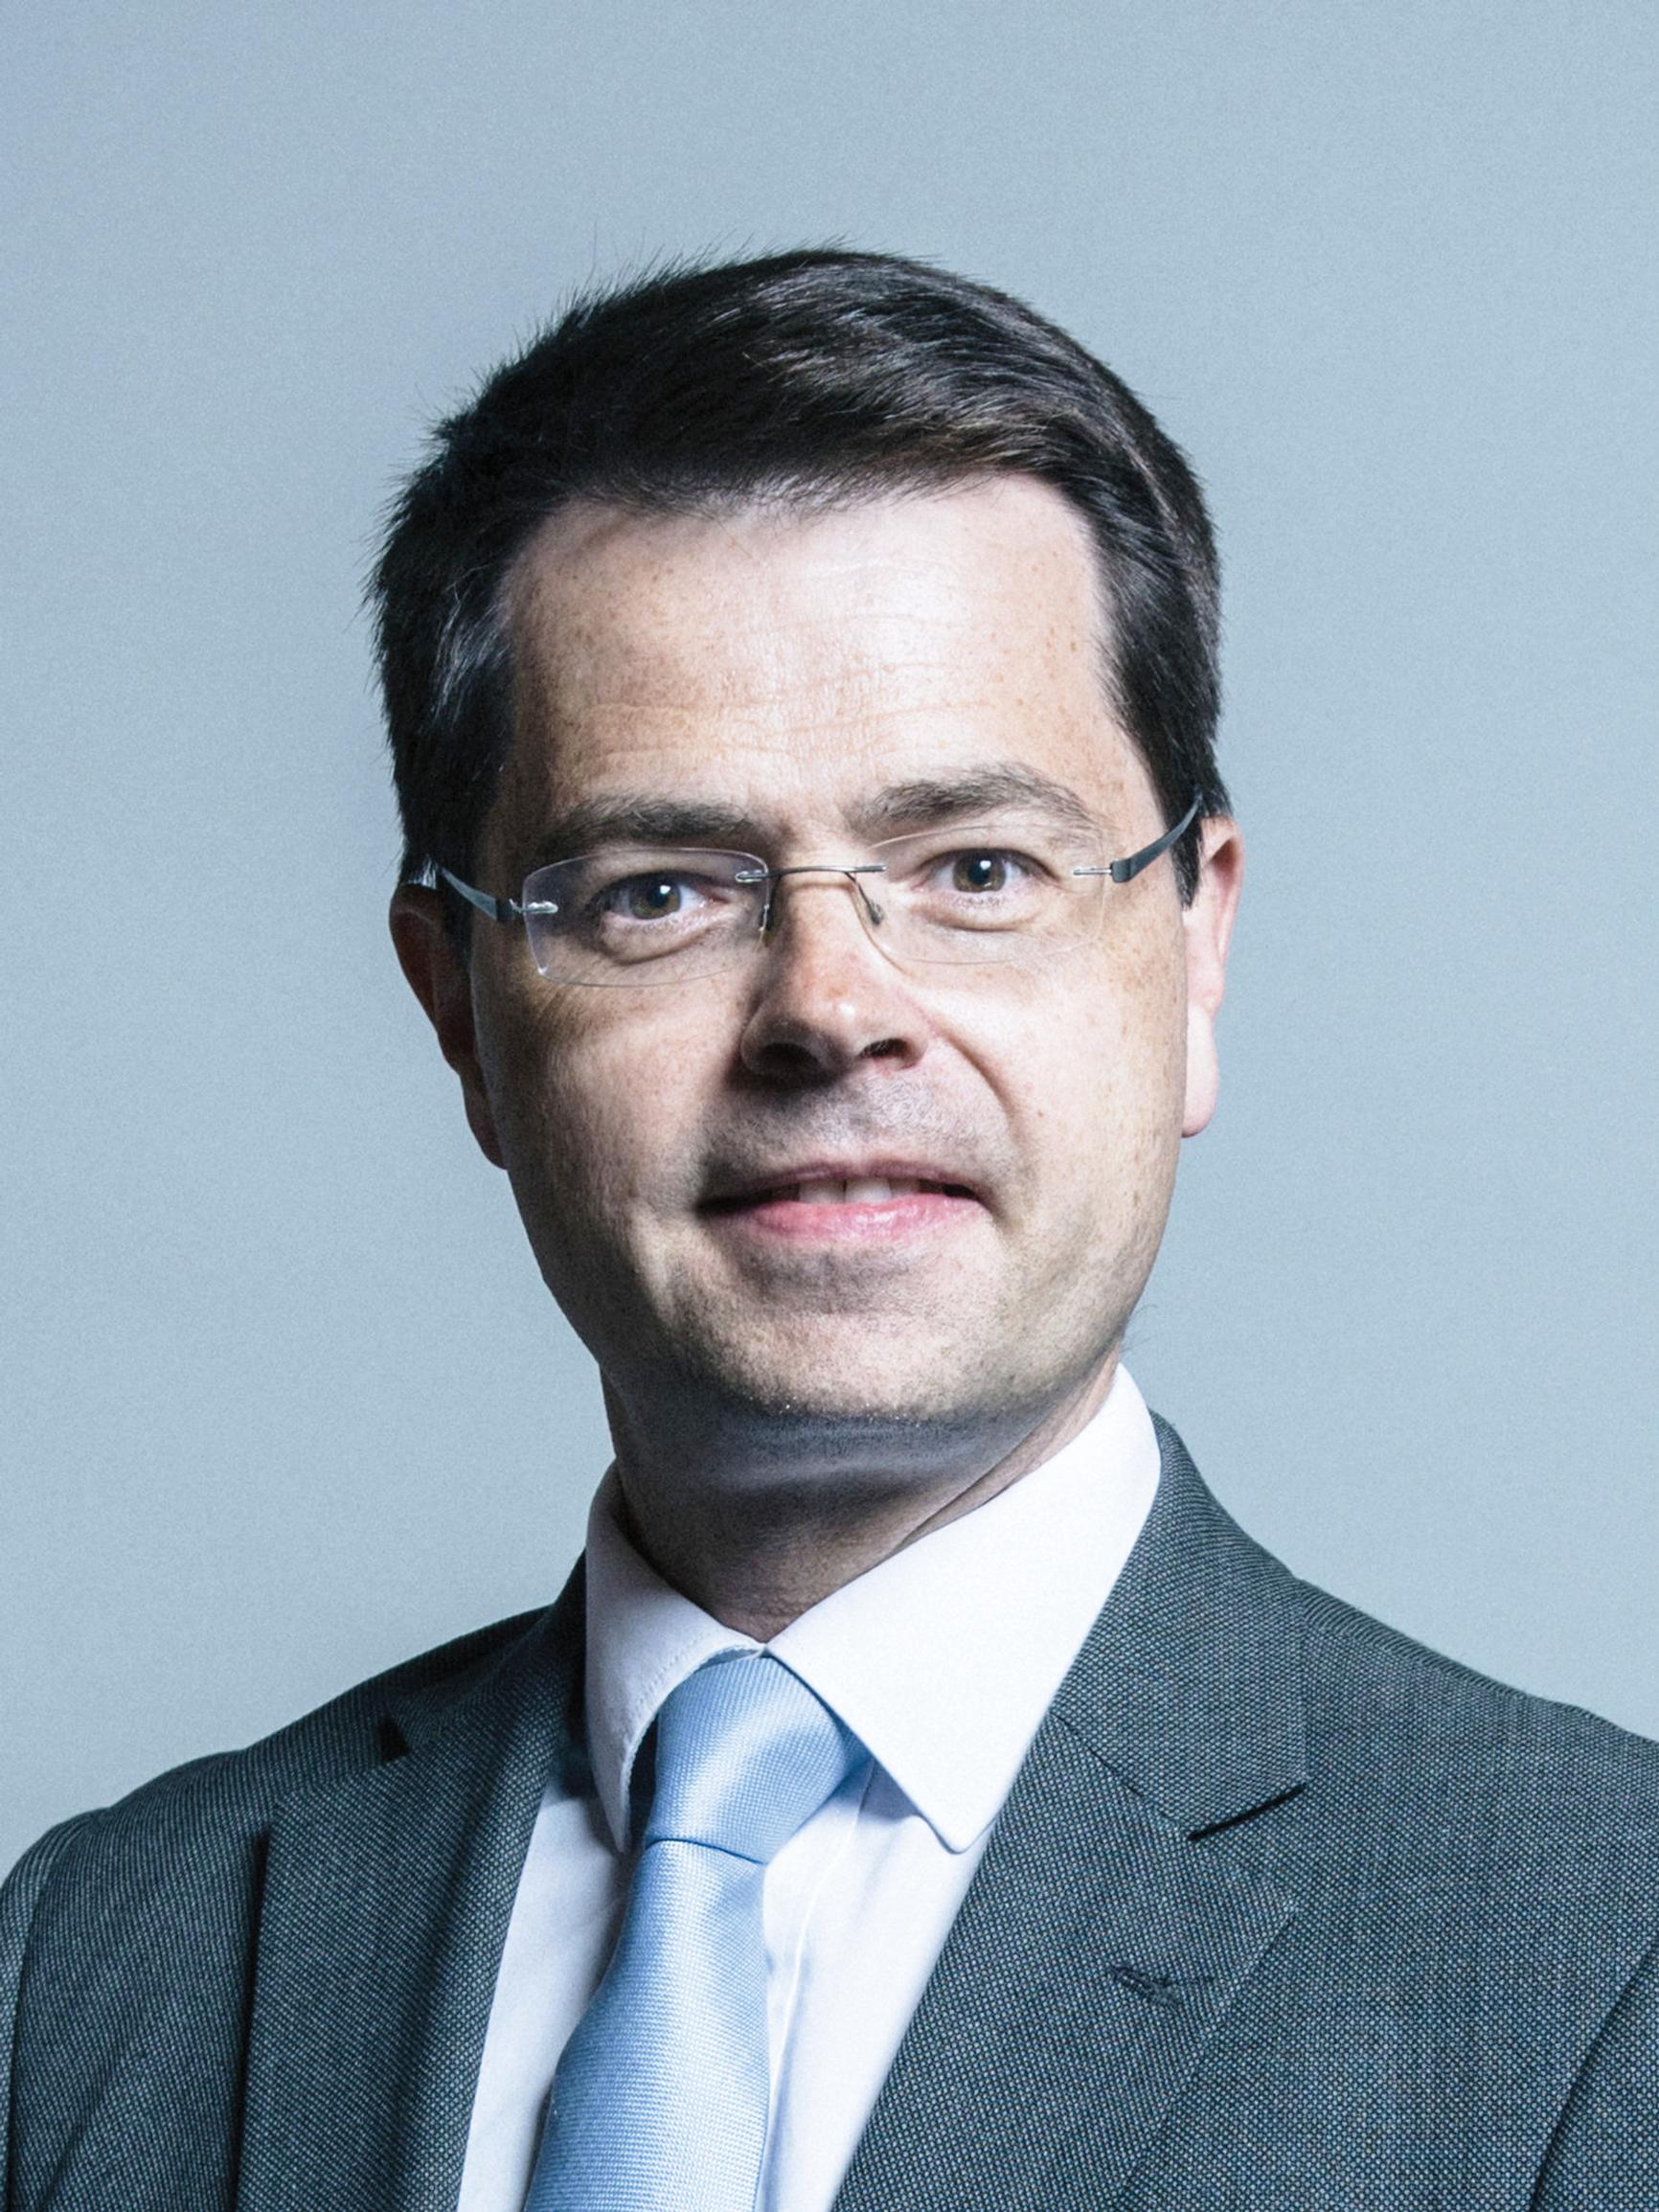 Brokenshire: critical of the parking policies and says housing ambitions don't go far enough